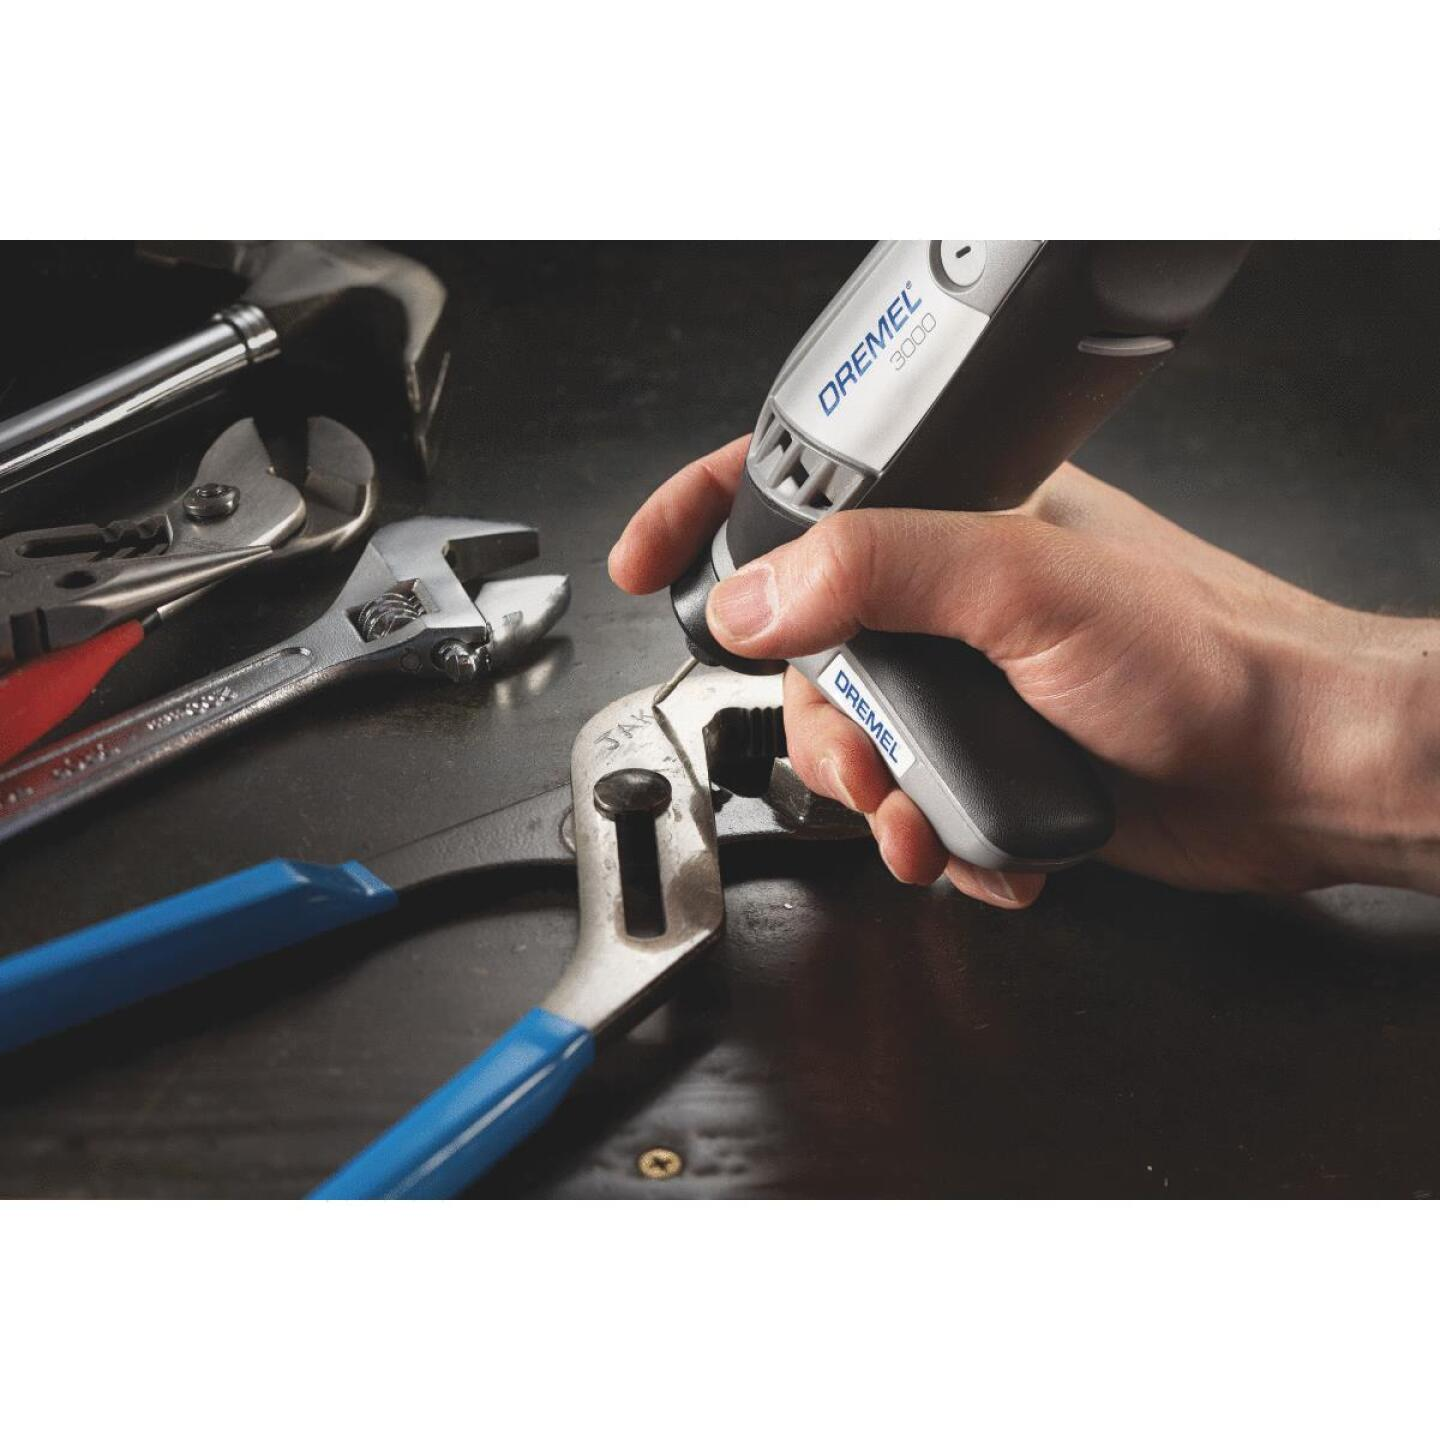 Dremel 120-Volt 1.2-Amp Variable Speed Electric Rotary Tool Kit Image 4